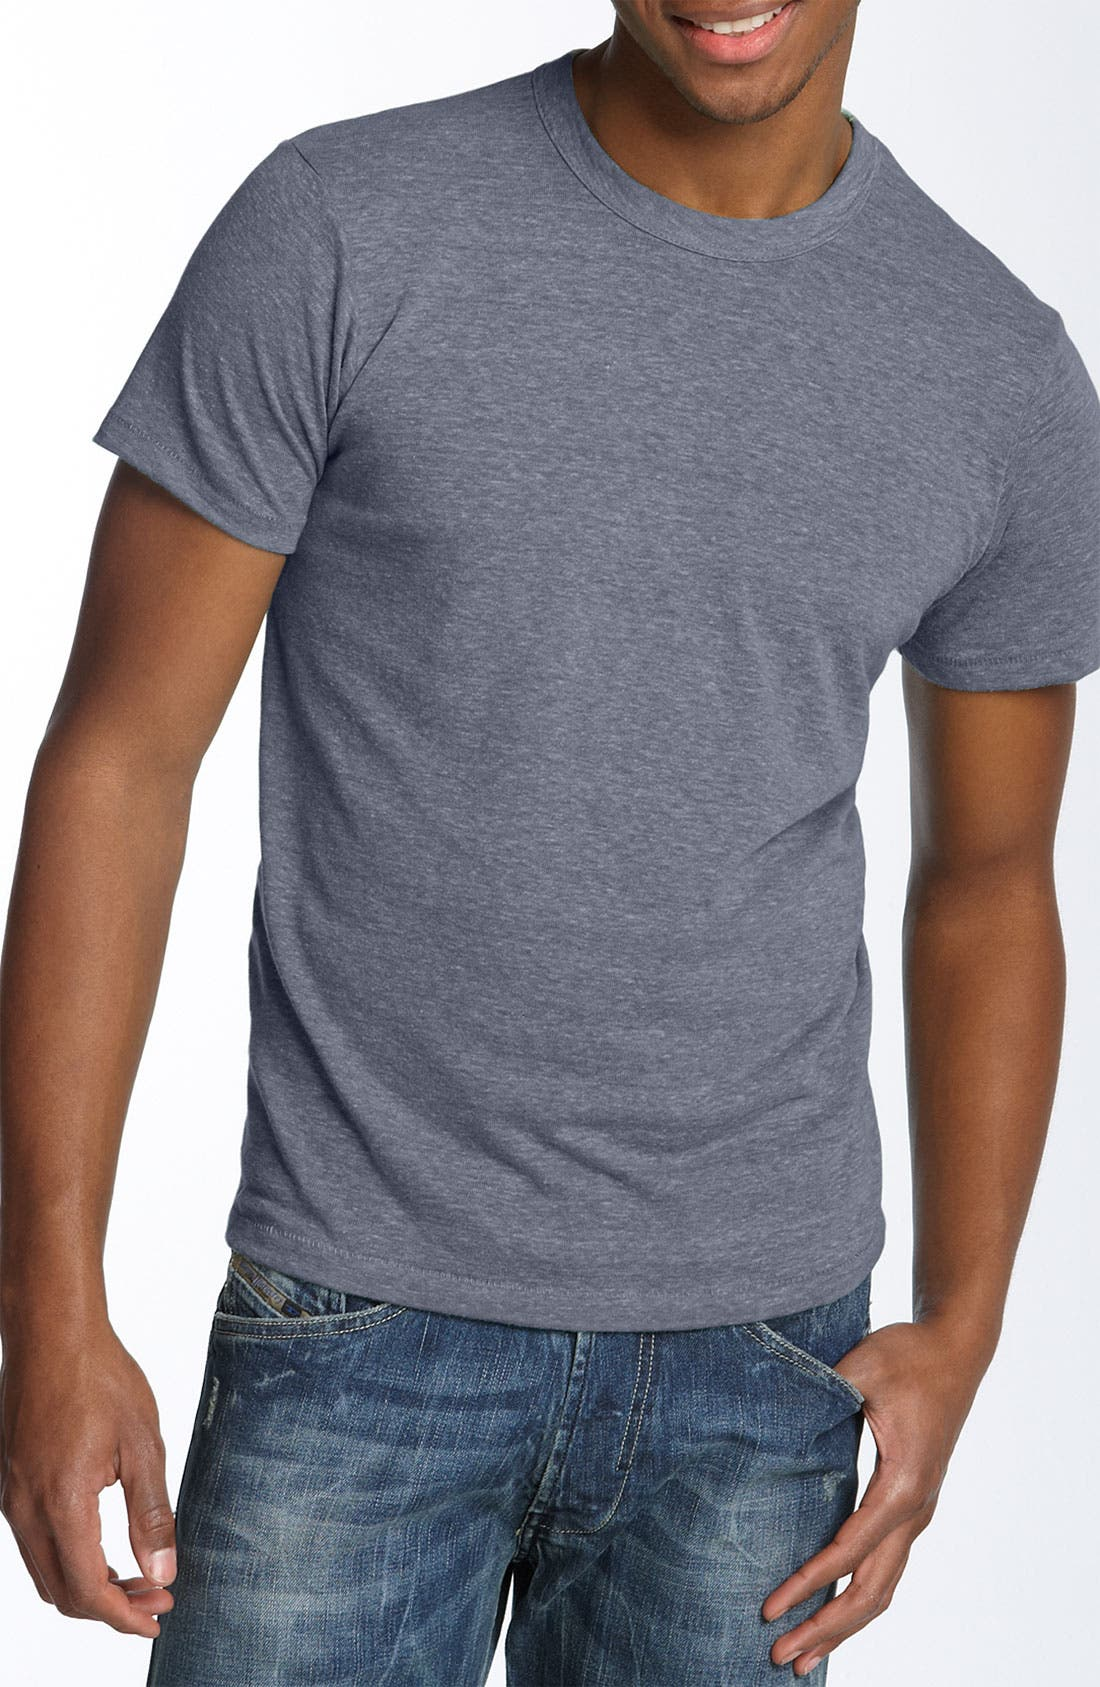 Alternate Image 1 Selected - Alternative Heathered Trim Fit Crewneck T-Shirt